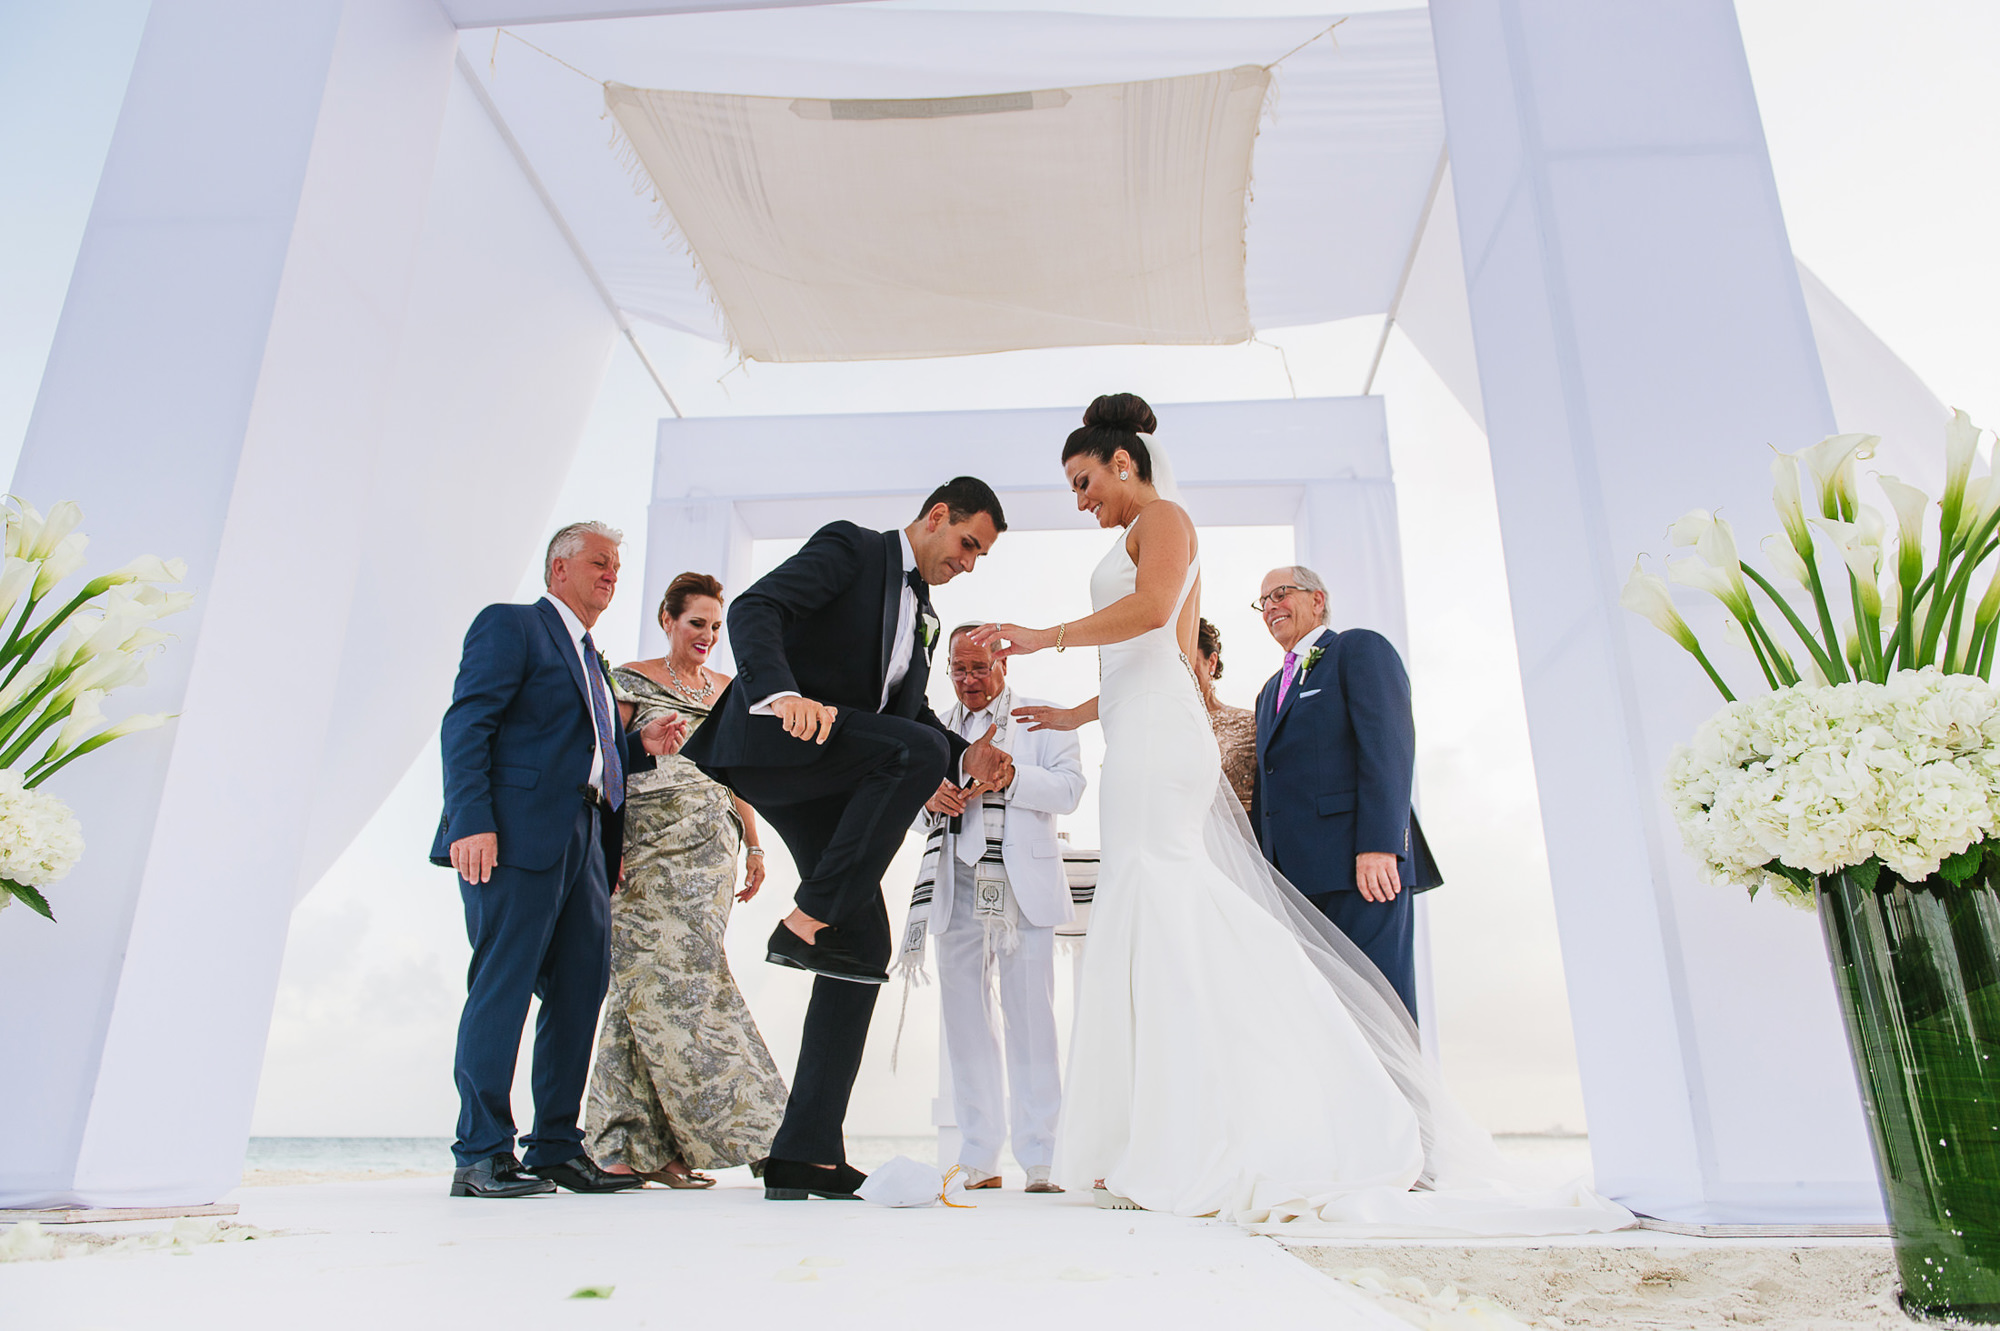 Groom stepping on glass for Jewish wedding ceremony under white chuppah, by Citlalli Rico